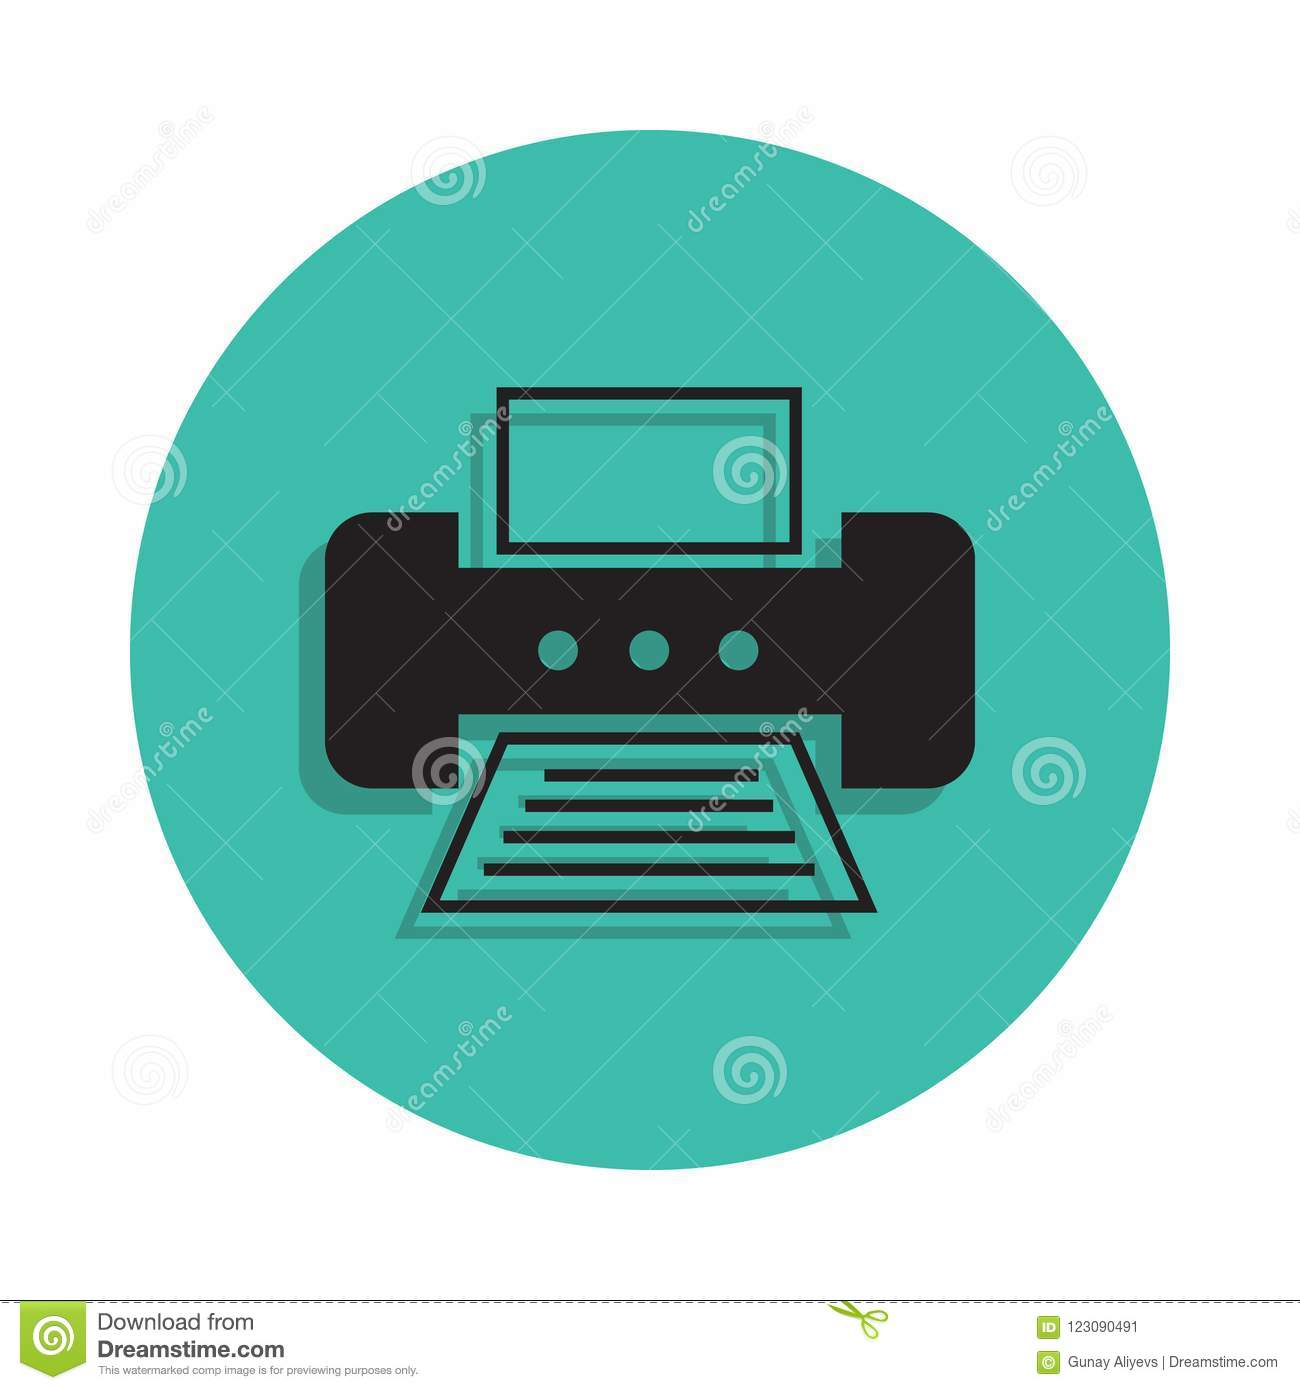 Portable Printer Icon  Element Of Printing House For Mobile